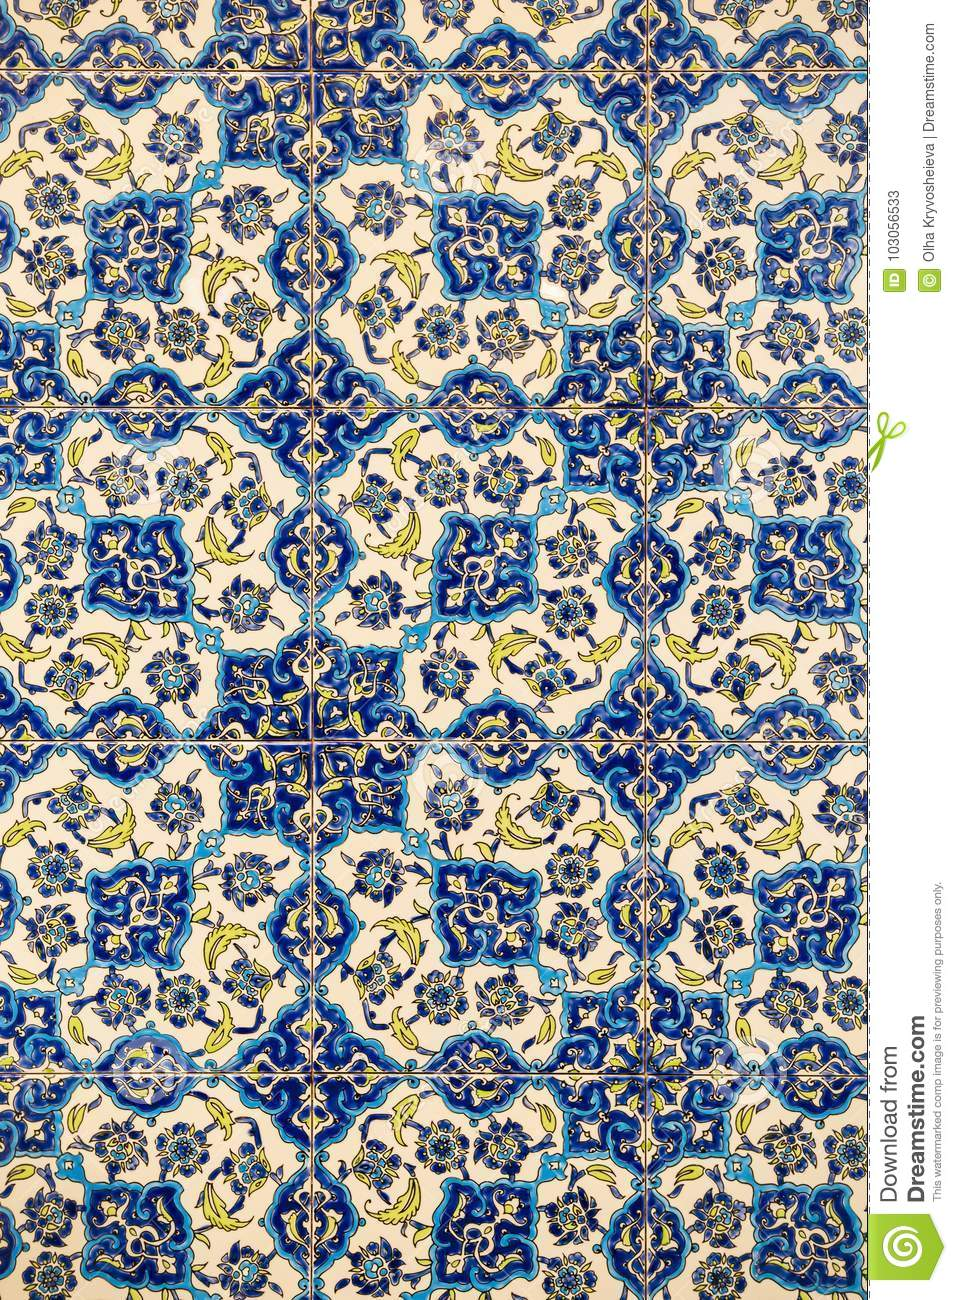 flower patterns on ceramic tiles in the old turkish style. Black Bedroom Furniture Sets. Home Design Ideas